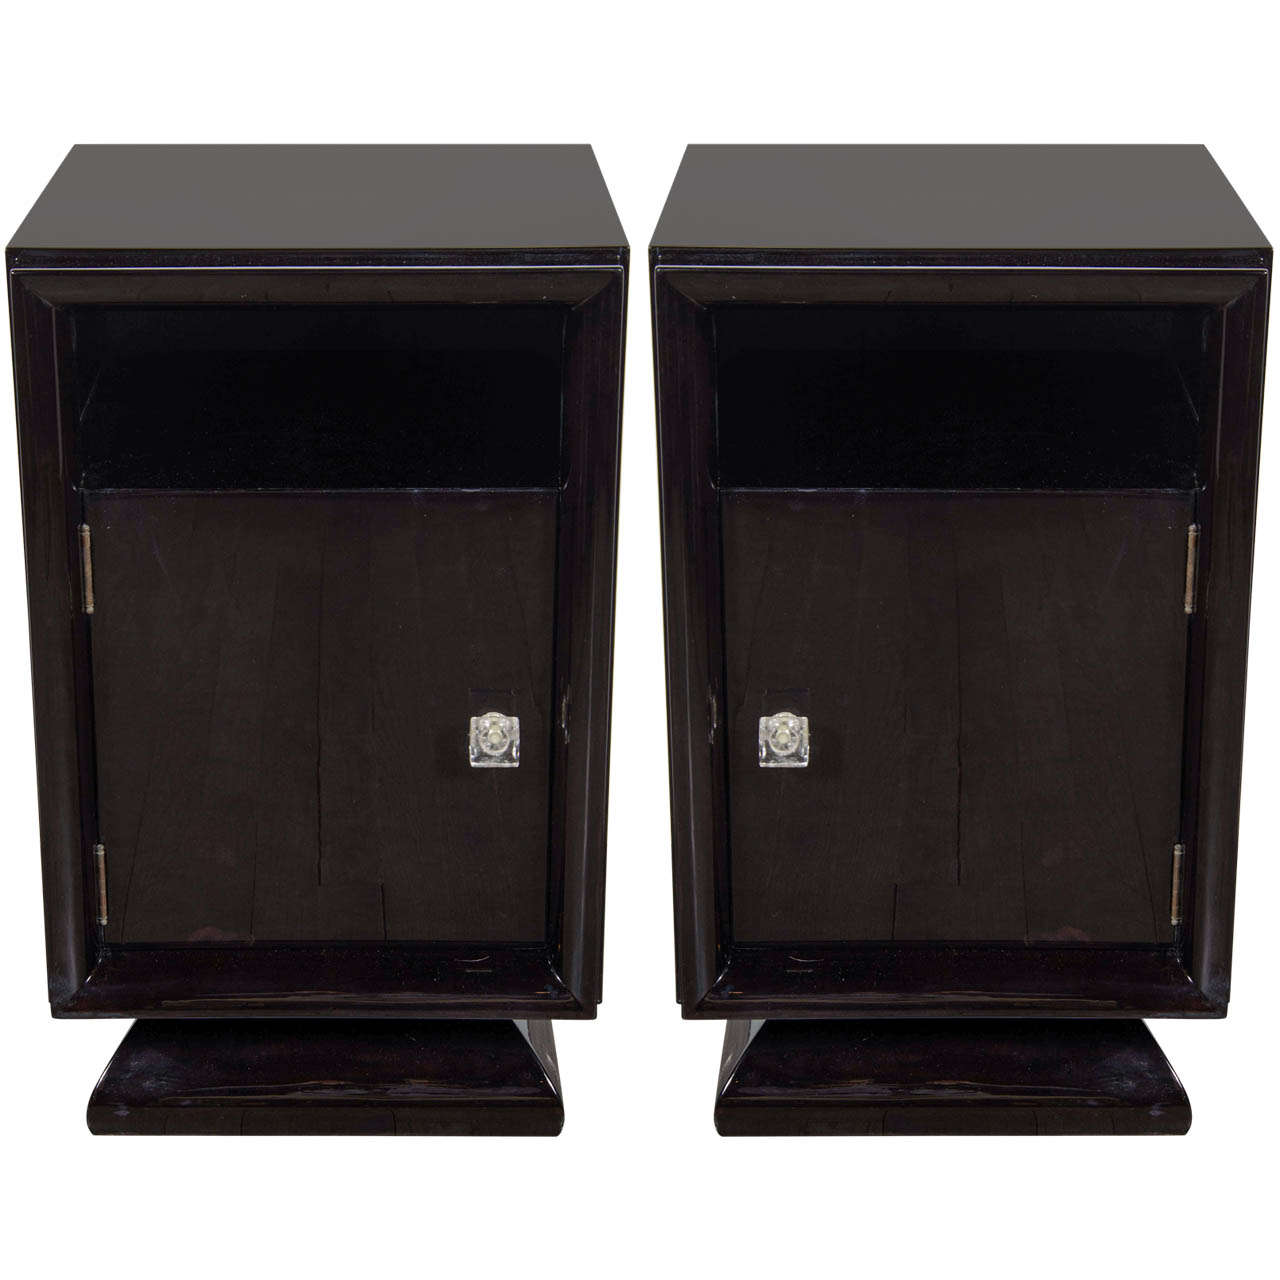 Pair of Mid-Century Modernist Plinth Base Nightstands / End Tables